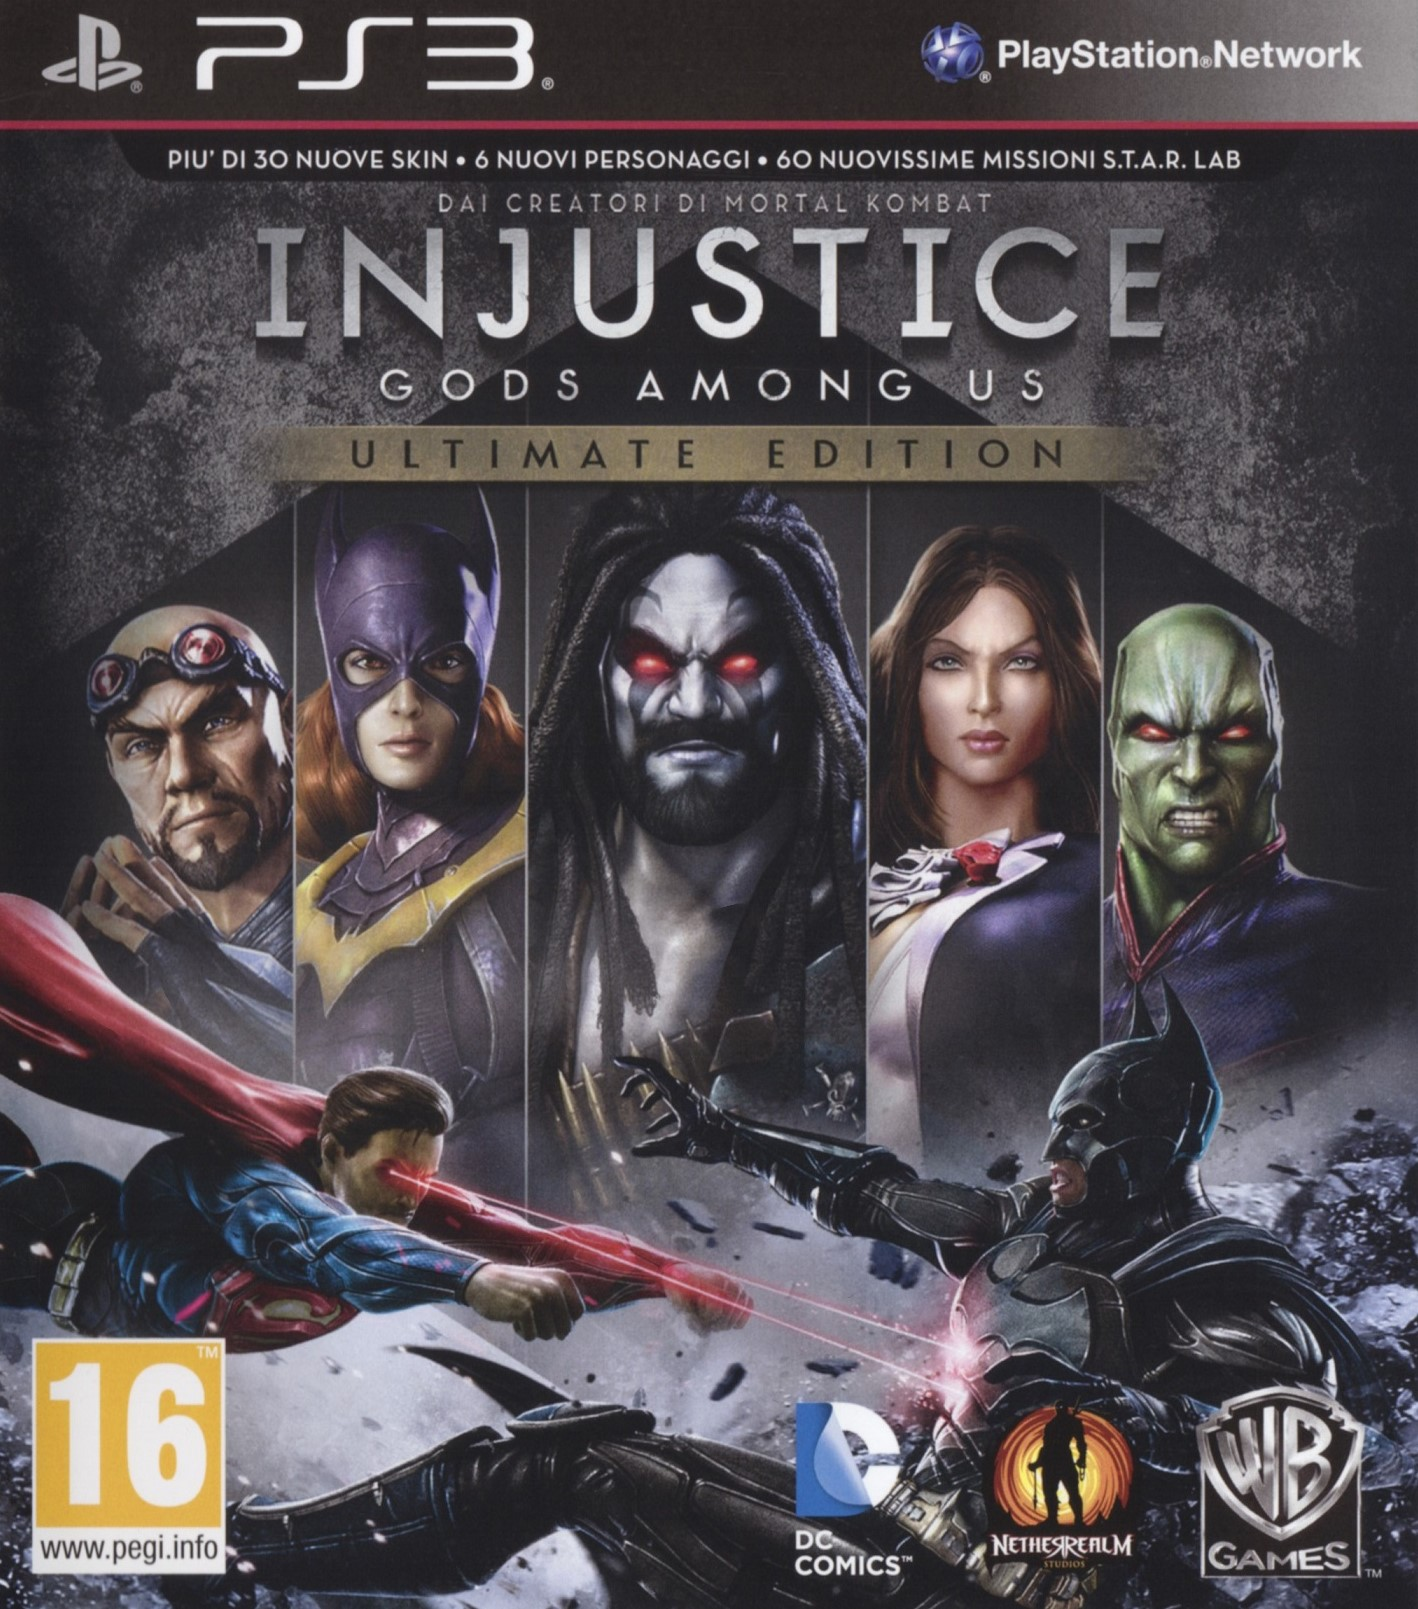 Injustice Gods Among Us Ultimate Edition - PlayStation 3 Játékok